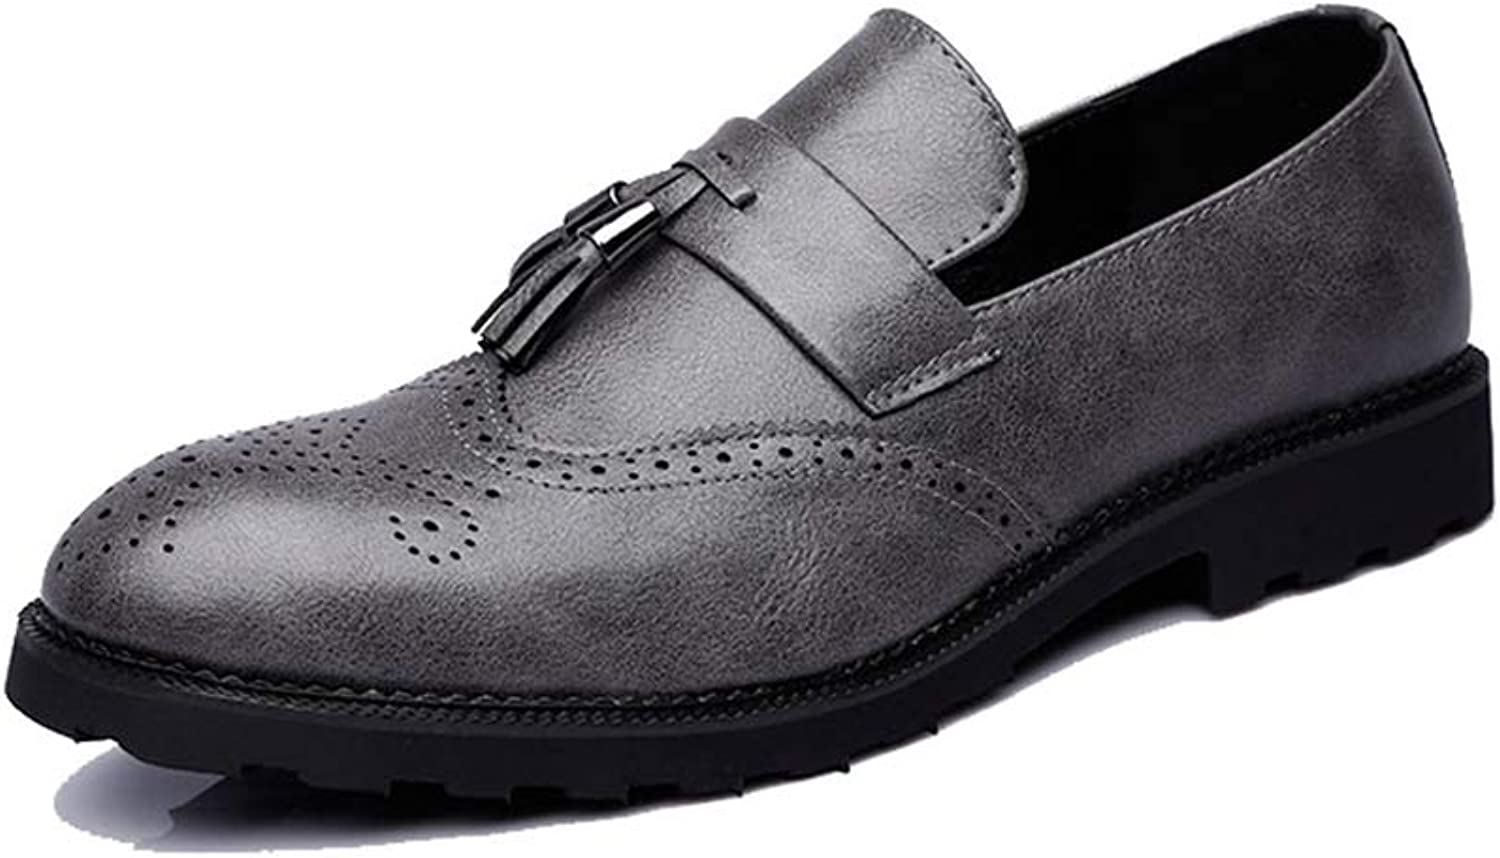 Men Formal Men's Business Dress Brogue shoes for Wedding Party Microfiber Leather Oxford shoes